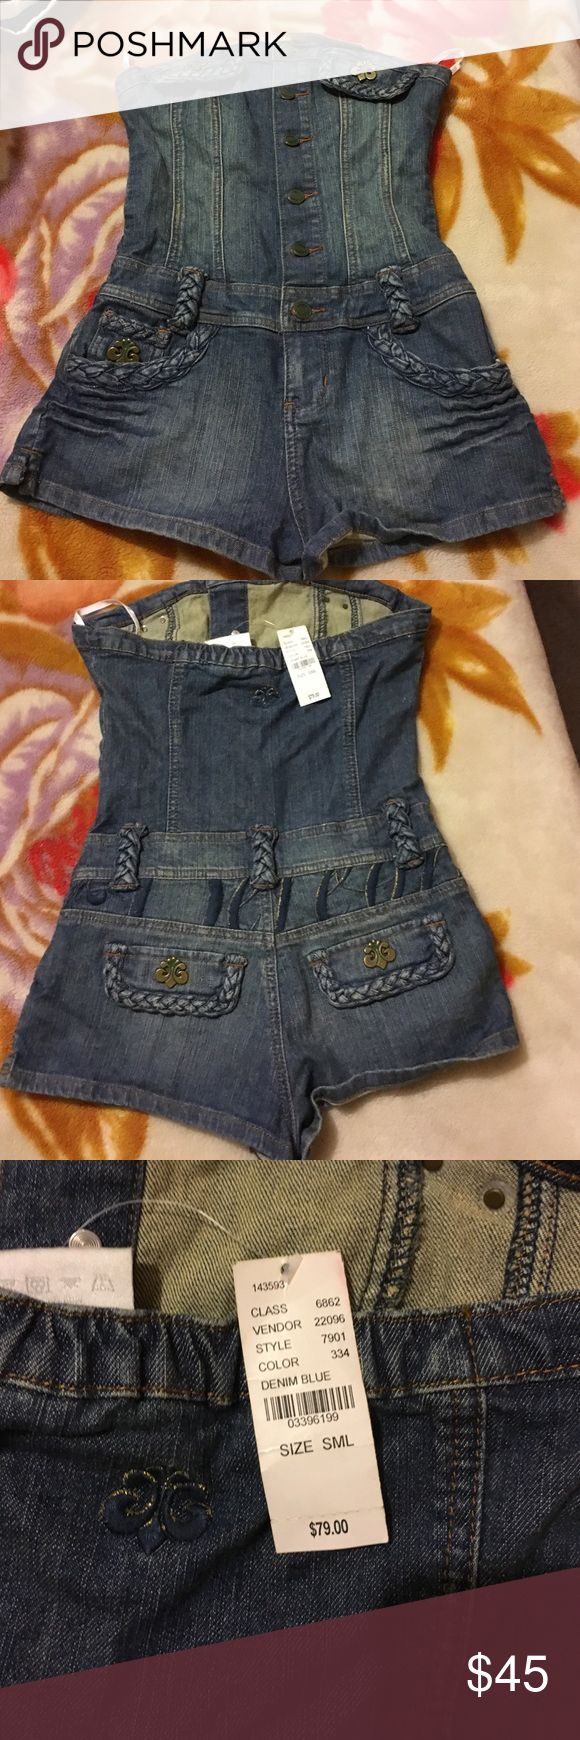 House of Dereon Romper(Beyoncé clothing line) NWT House of Dereon denim romper. This was part of Beyoncé's clothing line back in the early 2000s House of Dereon Other